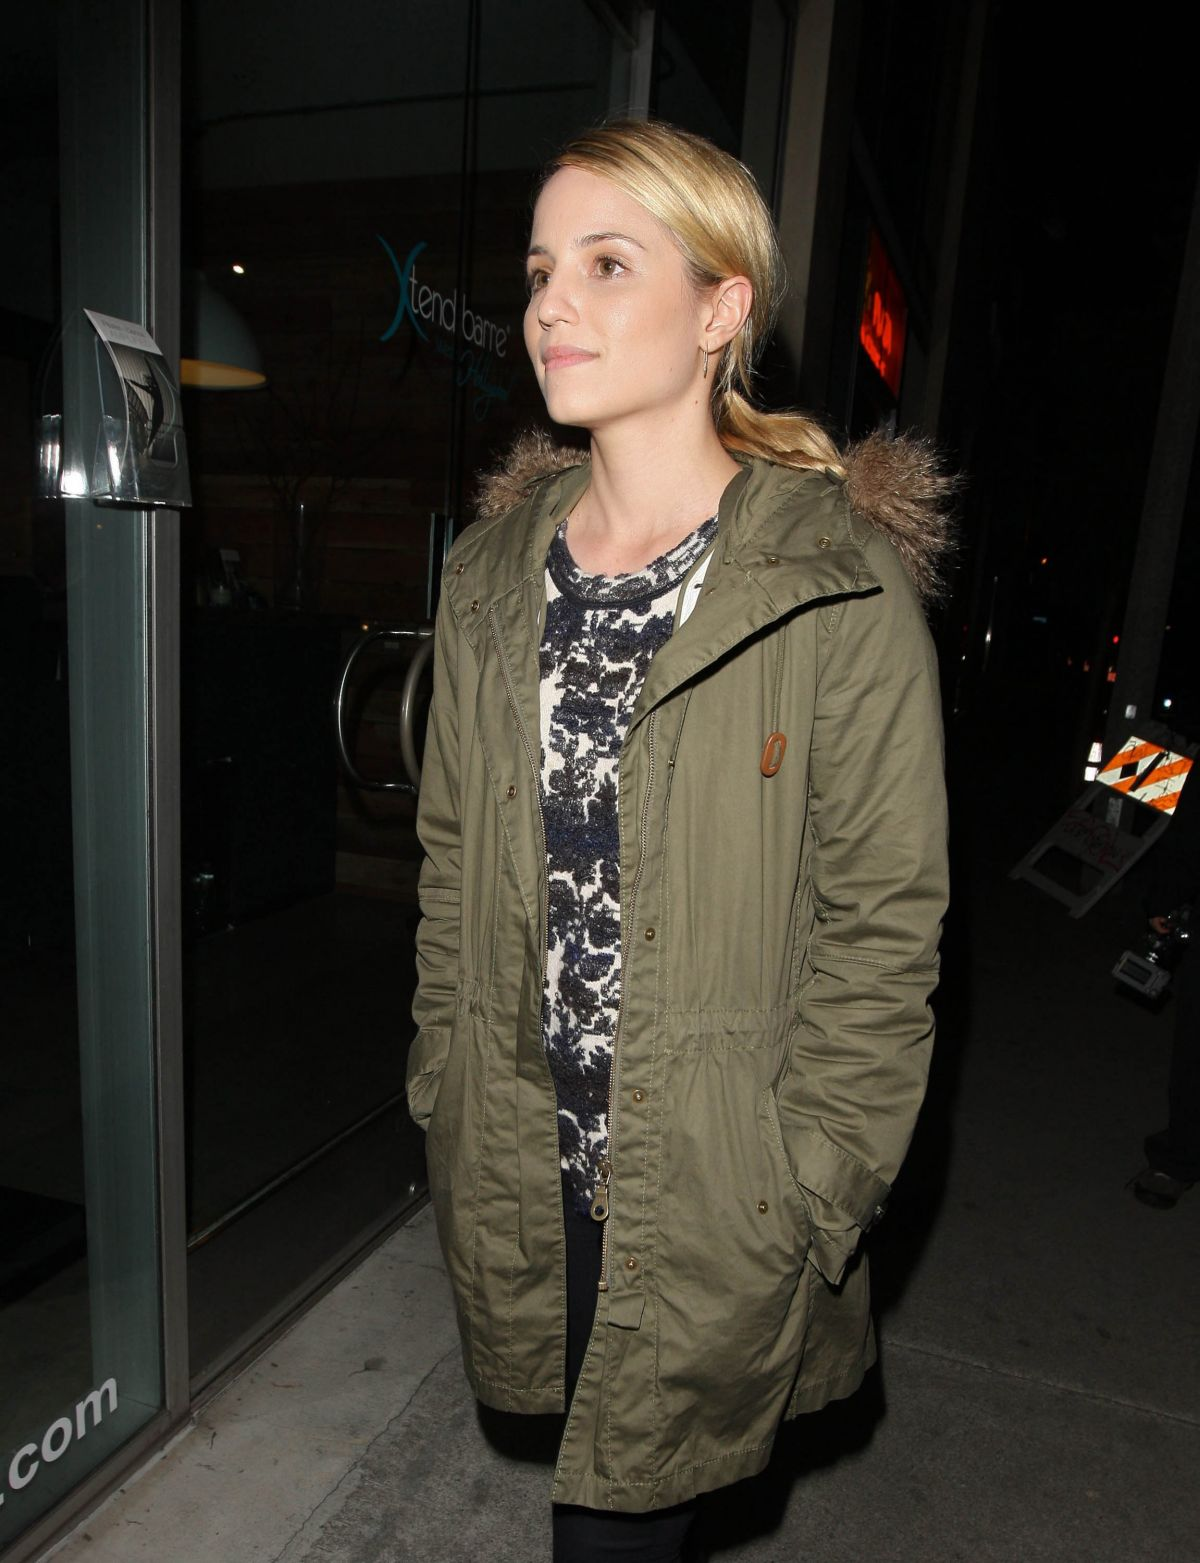 DIANNA AGRON Leaves a Restaurant in West Hollywood